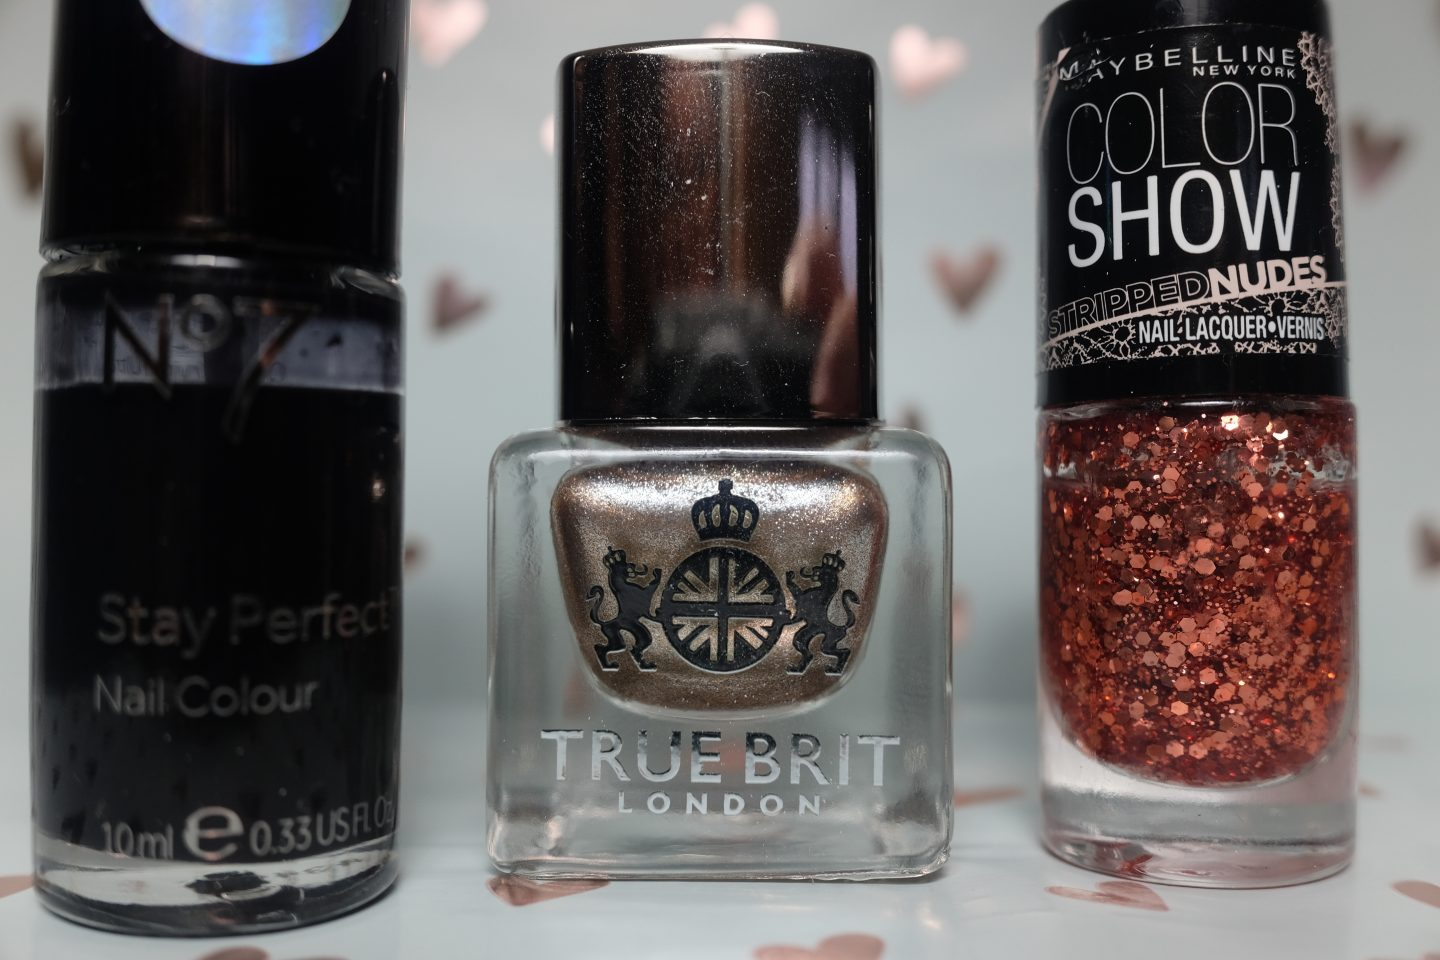 No7 Stay Perfect Nail Colour, True Brit and Maybelline Color Show.